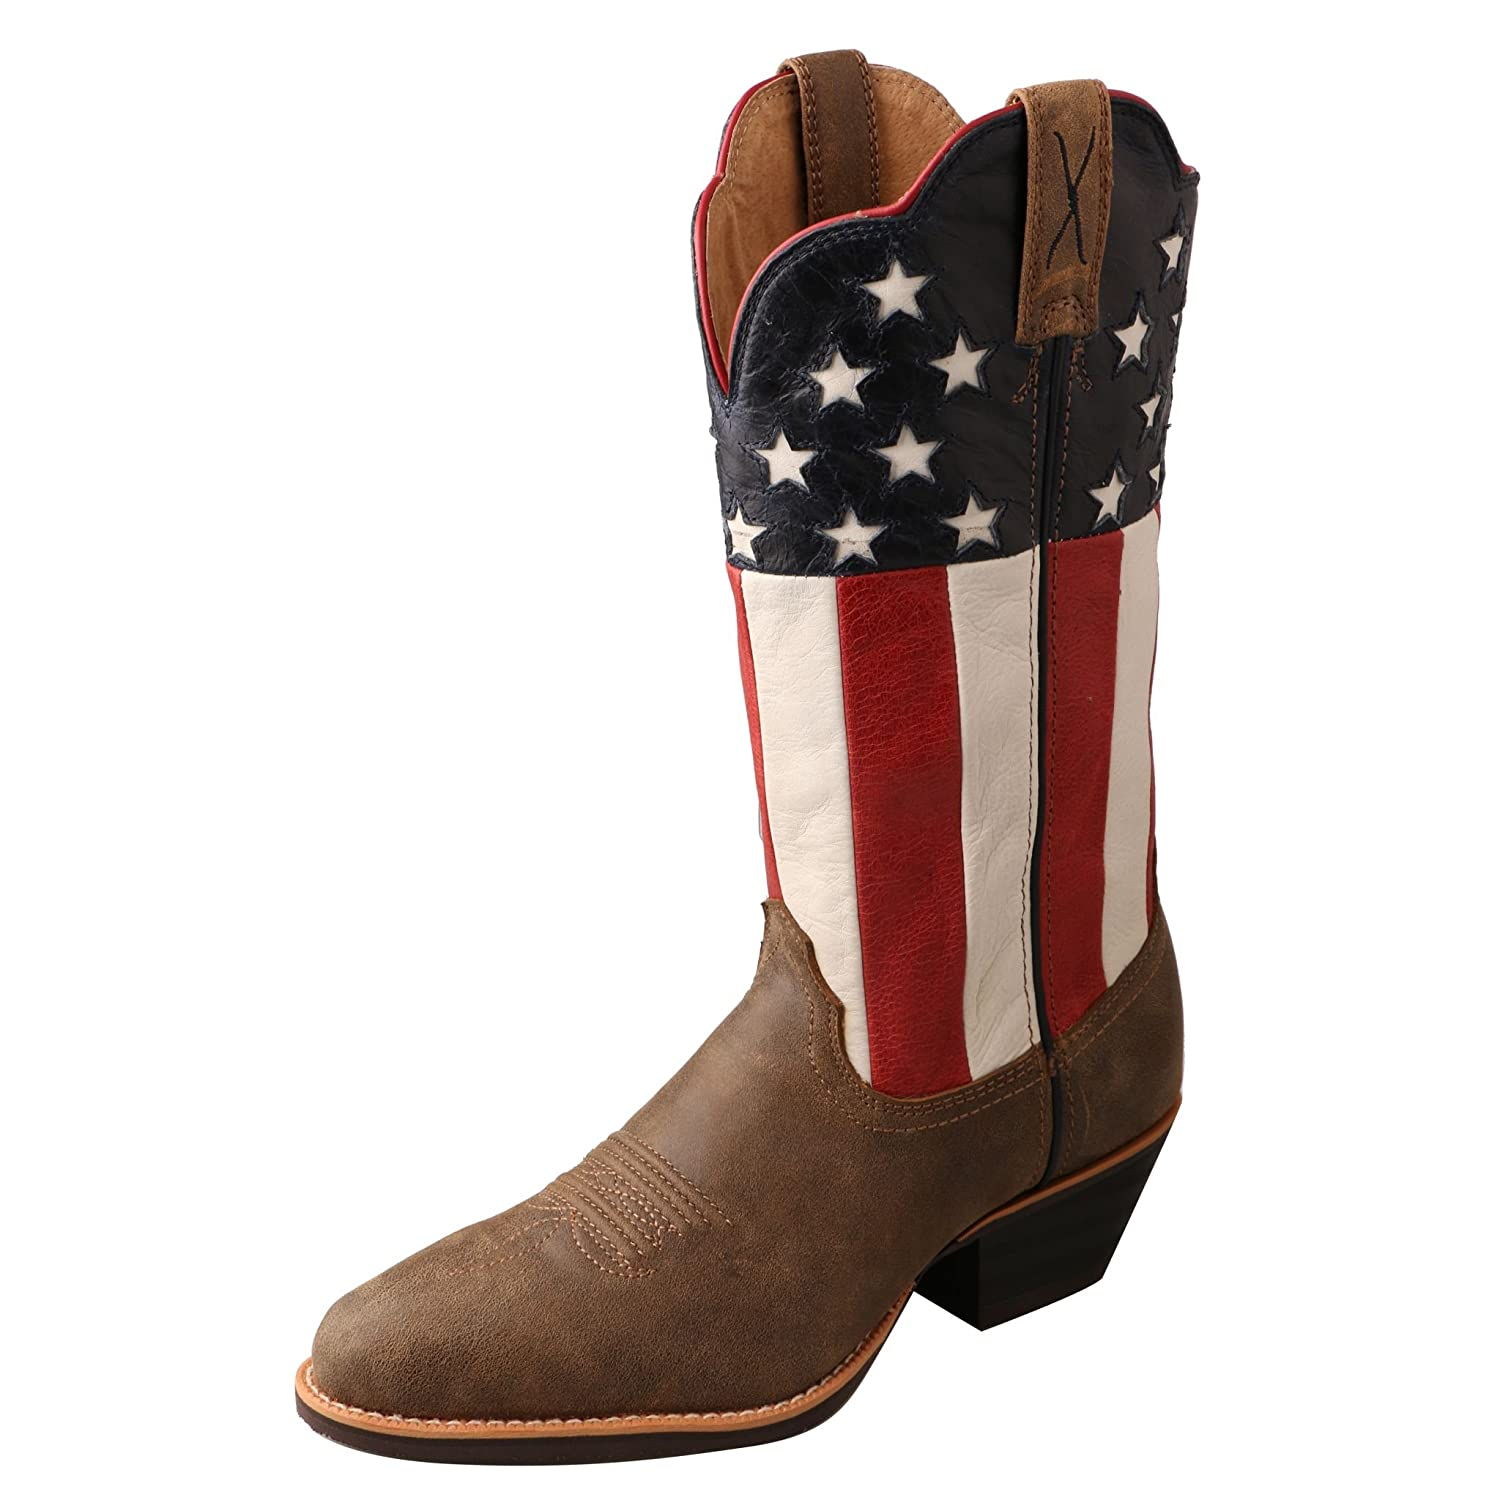 Twisted X Women's American Flag Western Cowgirl Boot Round Toe - Wwt0035 B0187Y3OAS 6.5|Bomber